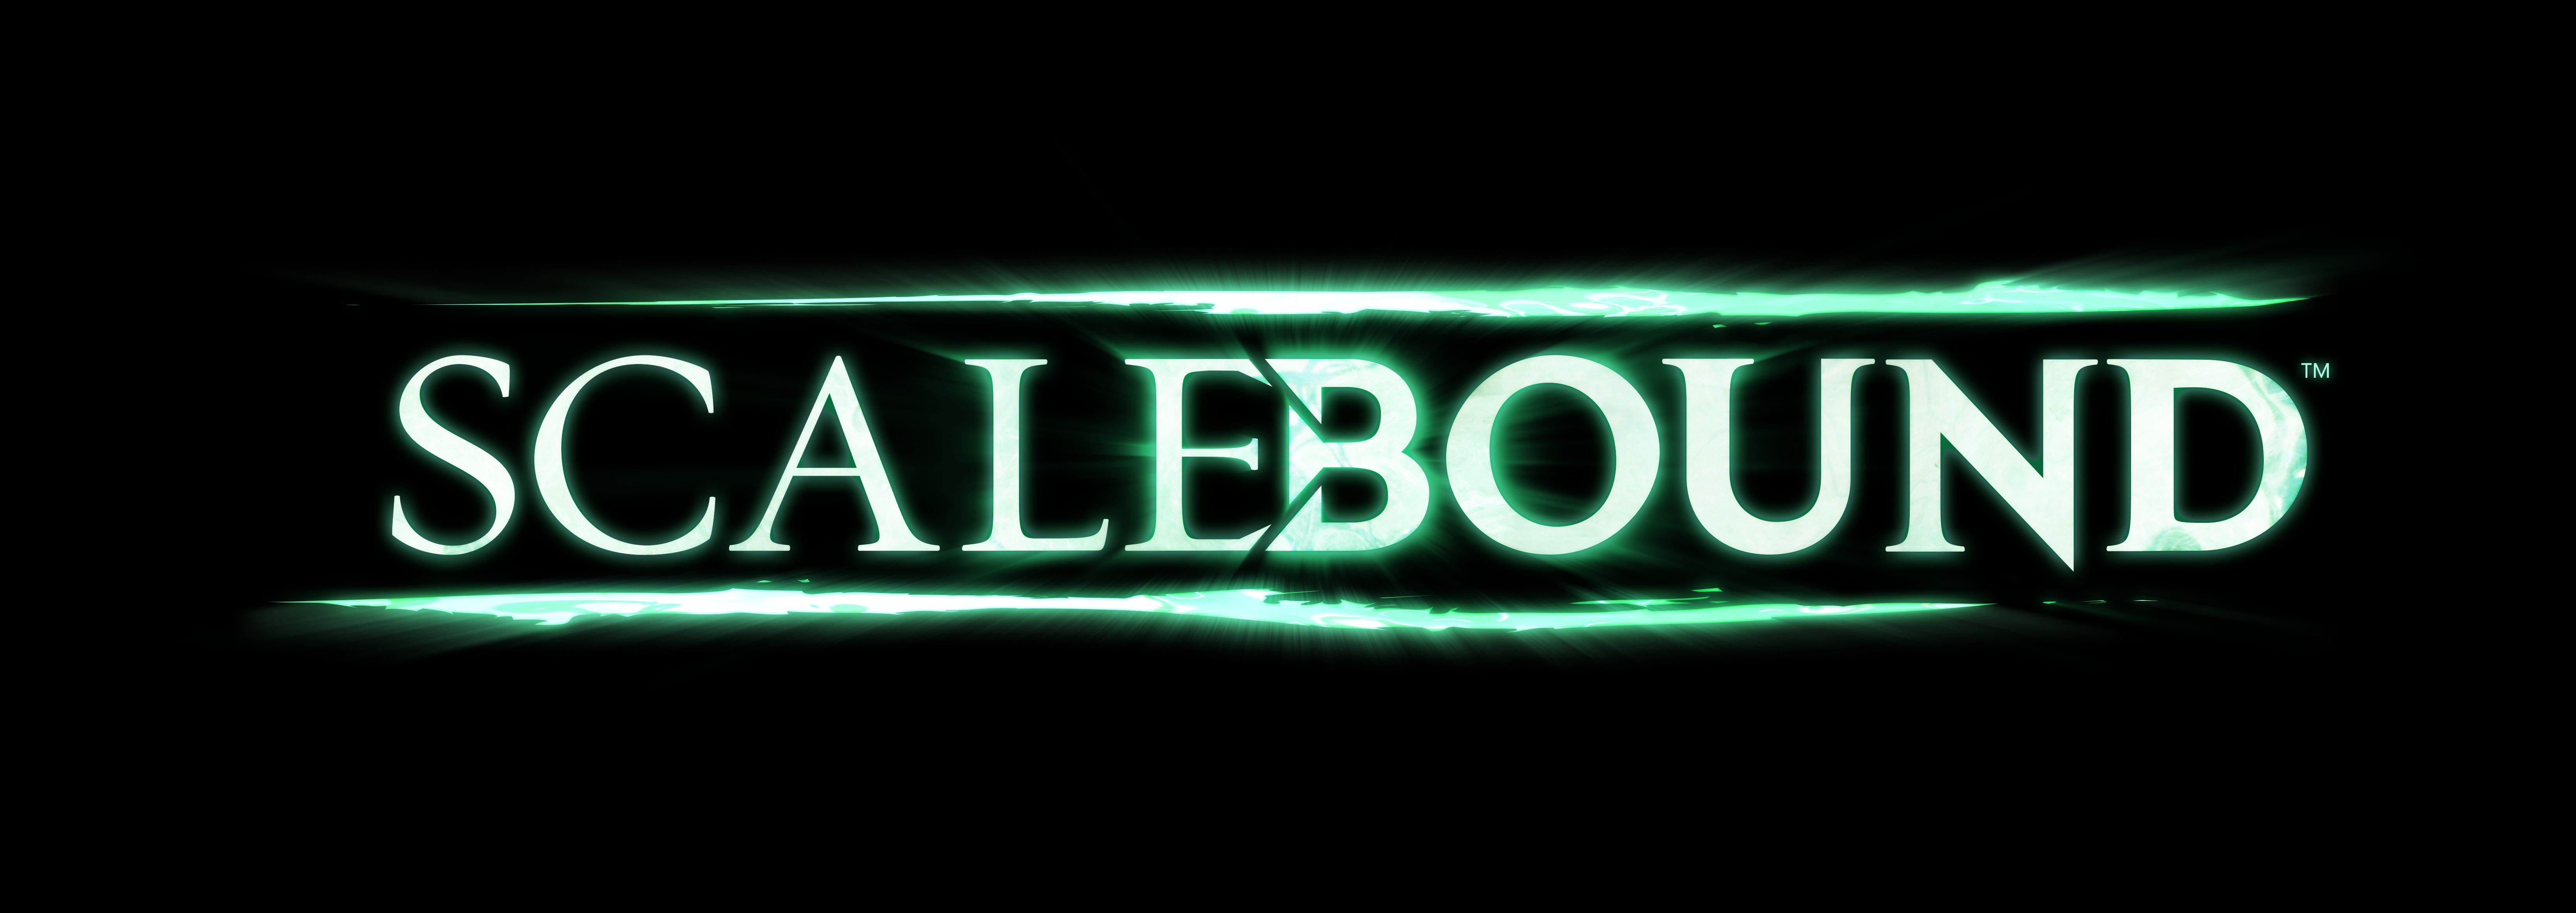 SCALEBOUND-LOGO-SCREEN-tif.jpg